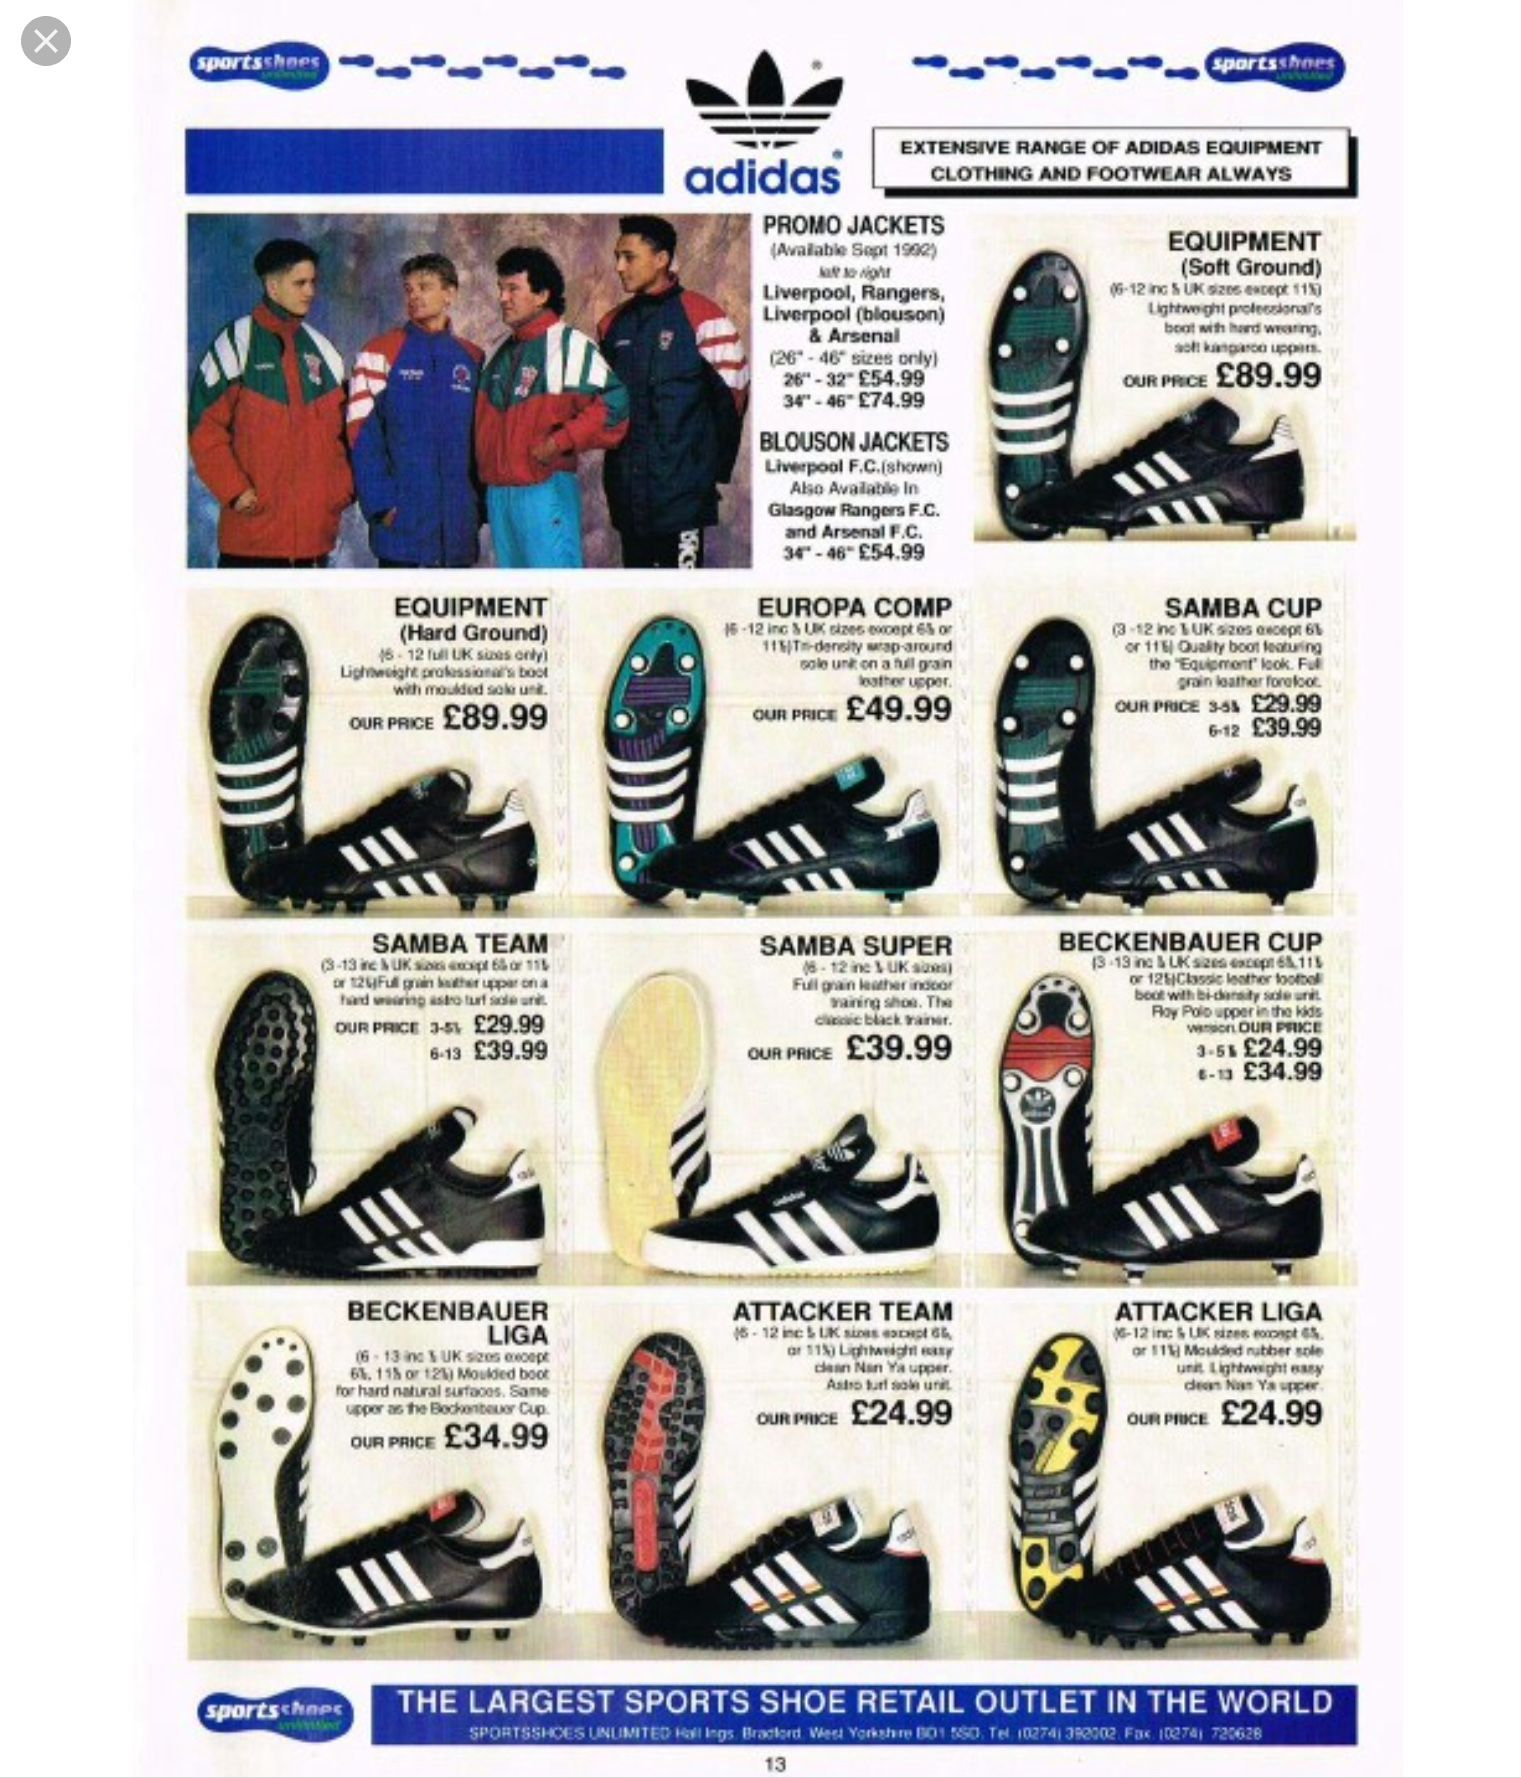 adidas Vintage Football Boot History Archive Images   Soccer